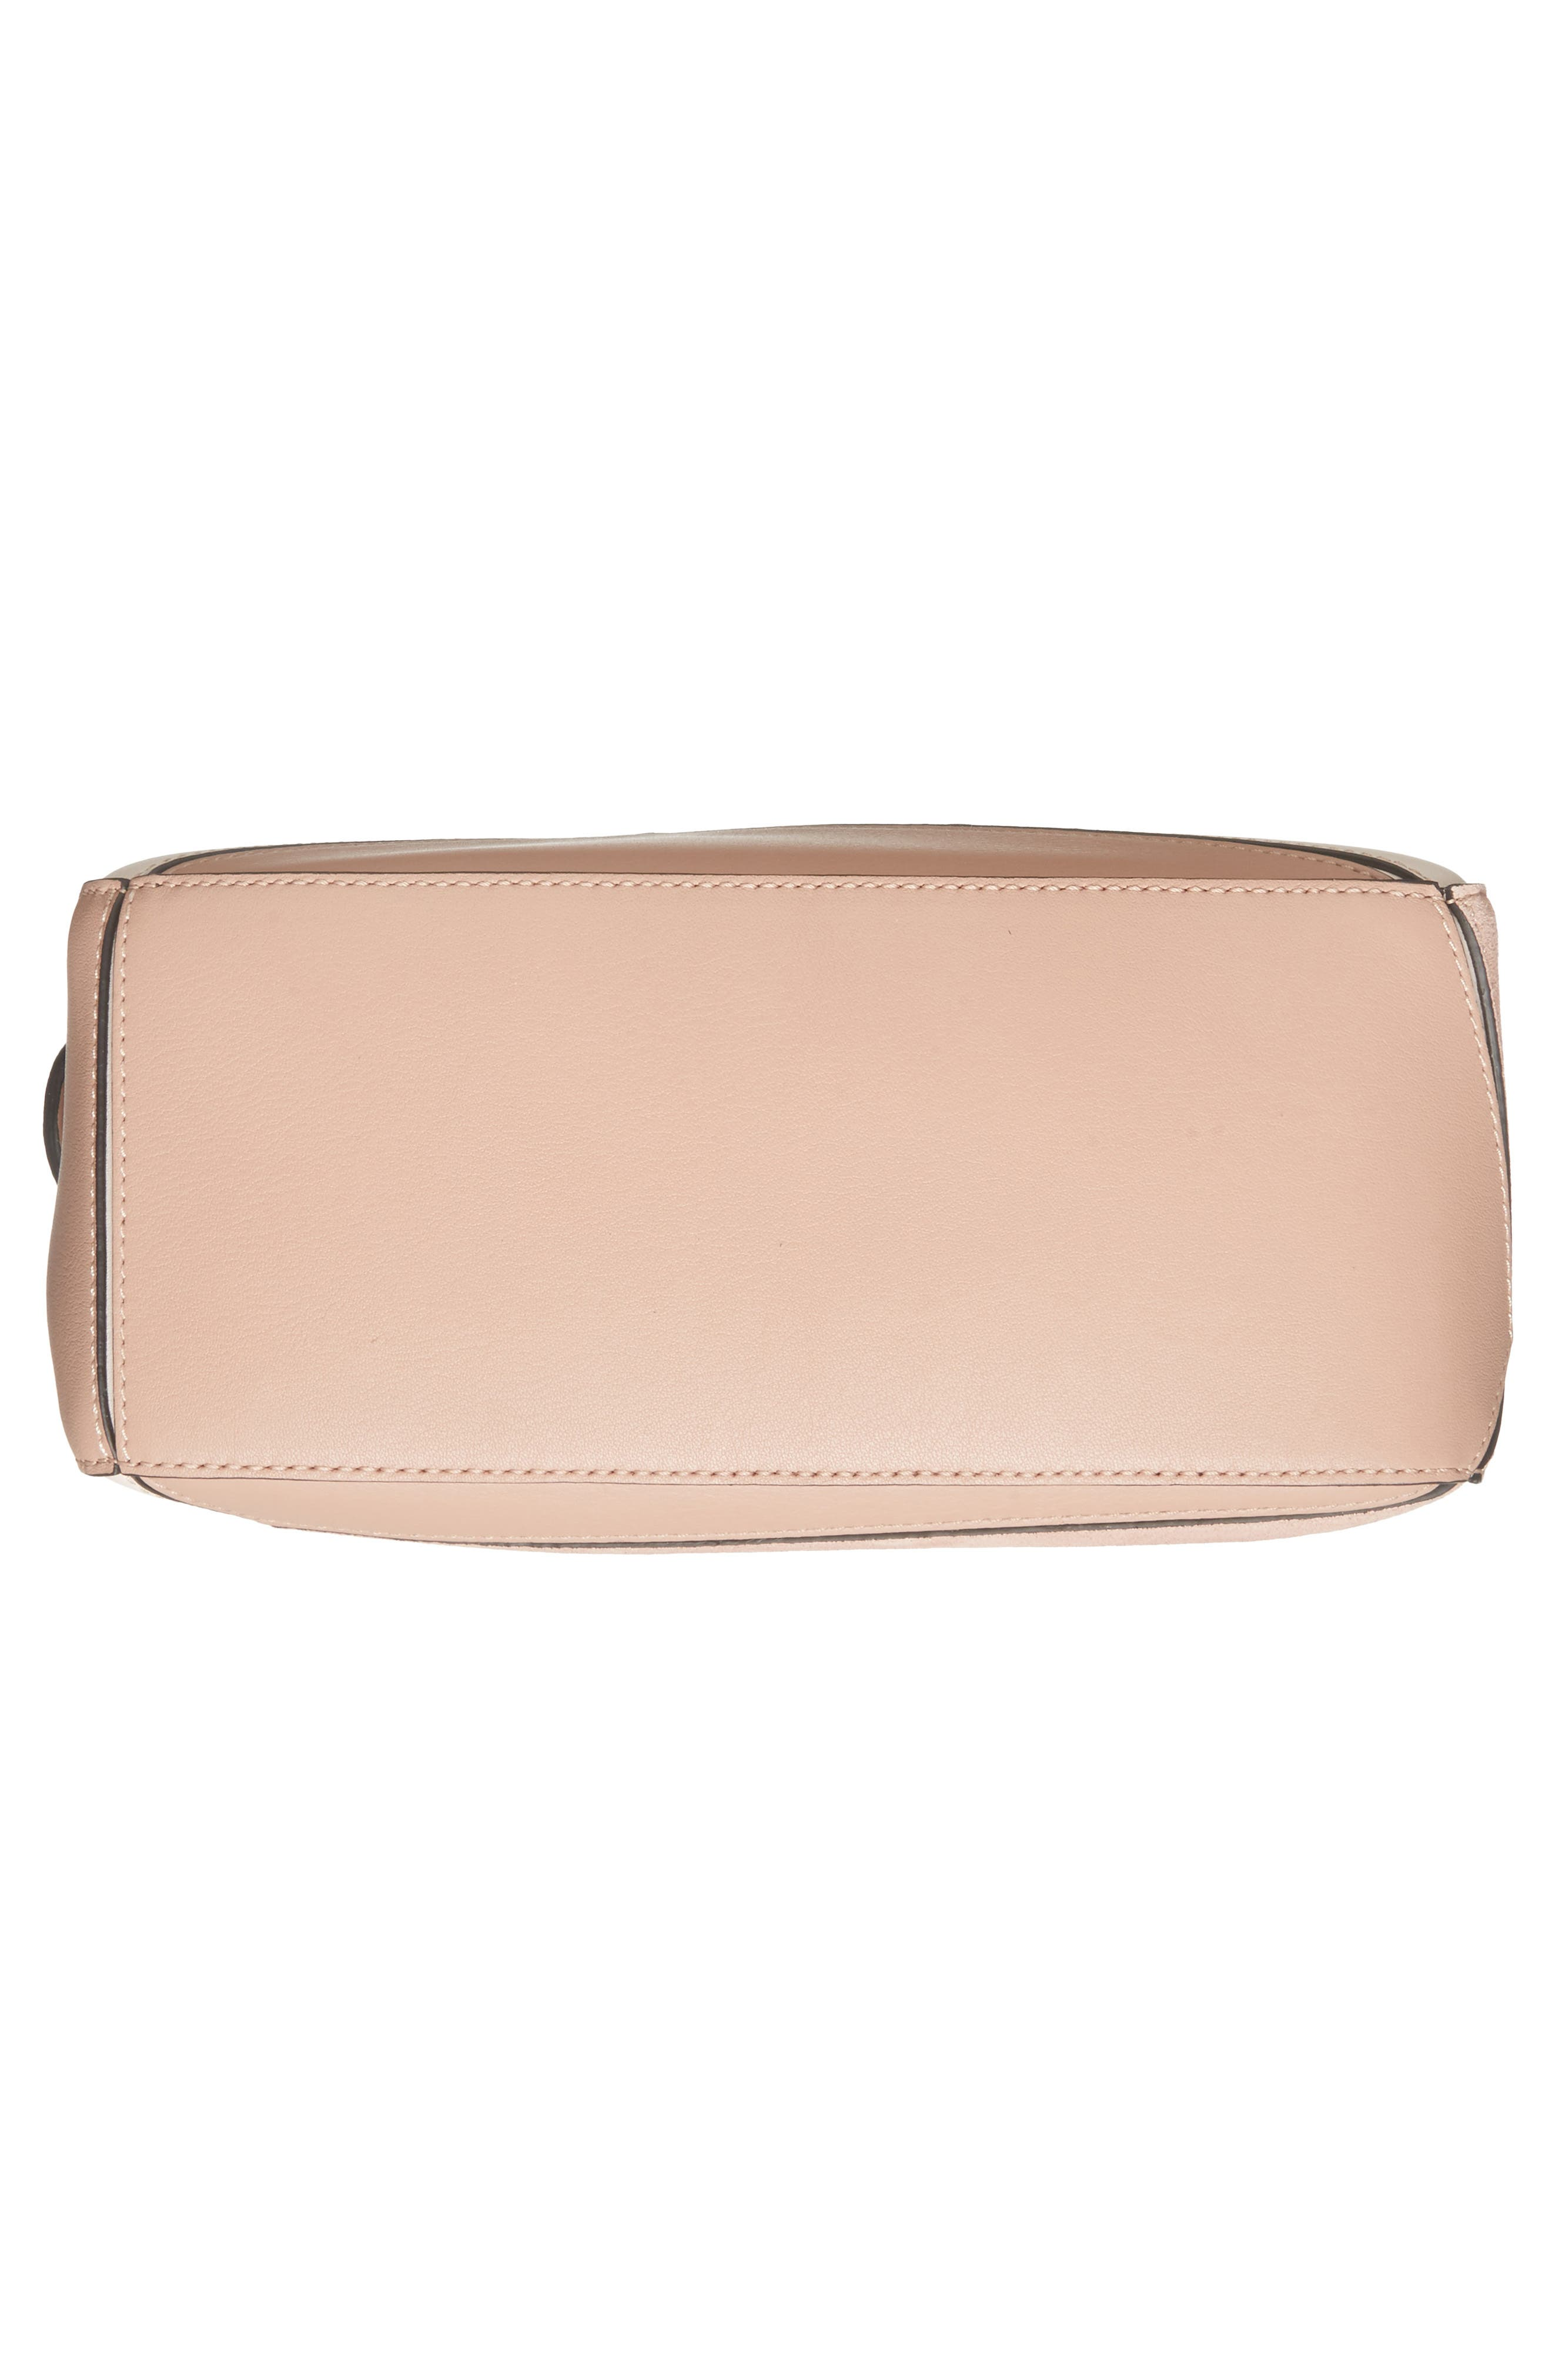 Small Puzzle Bicolor Leather Bag,                             Alternate thumbnail 6, color,                             Blush Multitone